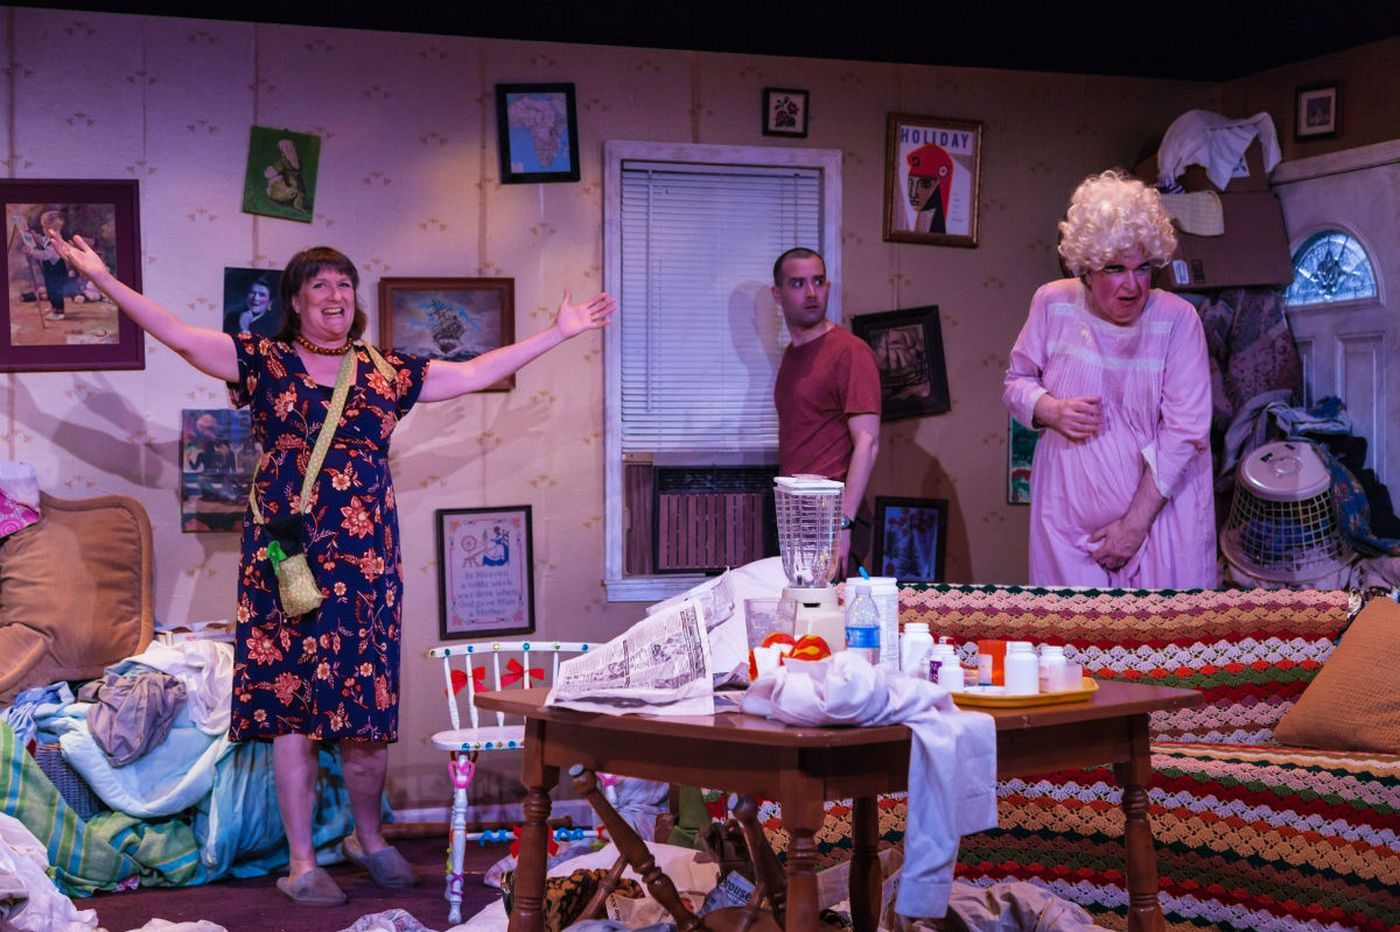 'HIR' by Simpatico Theatre: Sensational, passionate, fearless